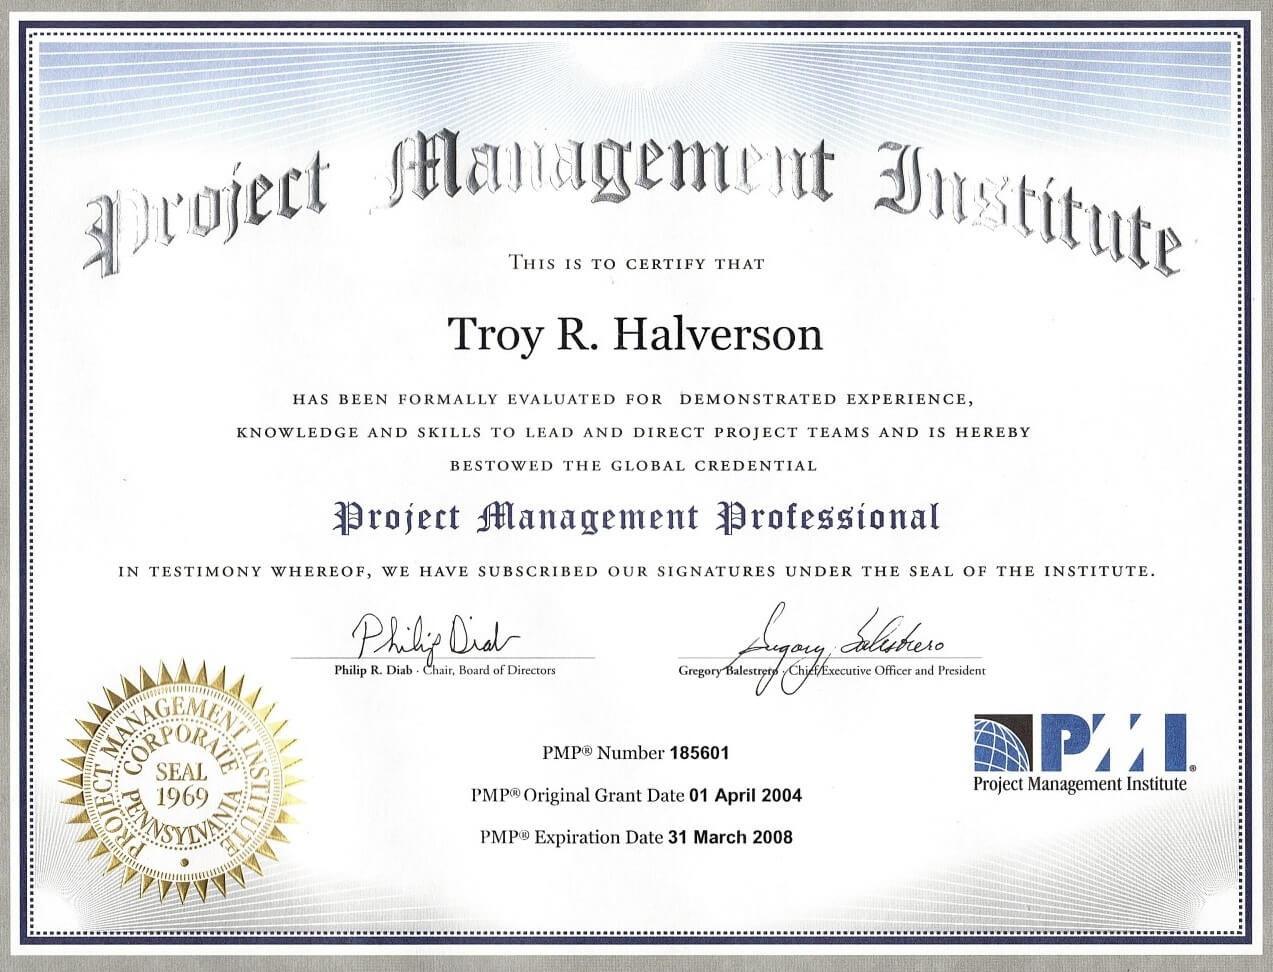 Troy halverson project management professional pmp certification 185601 2004 2008 state of georgia xflitez Image collections